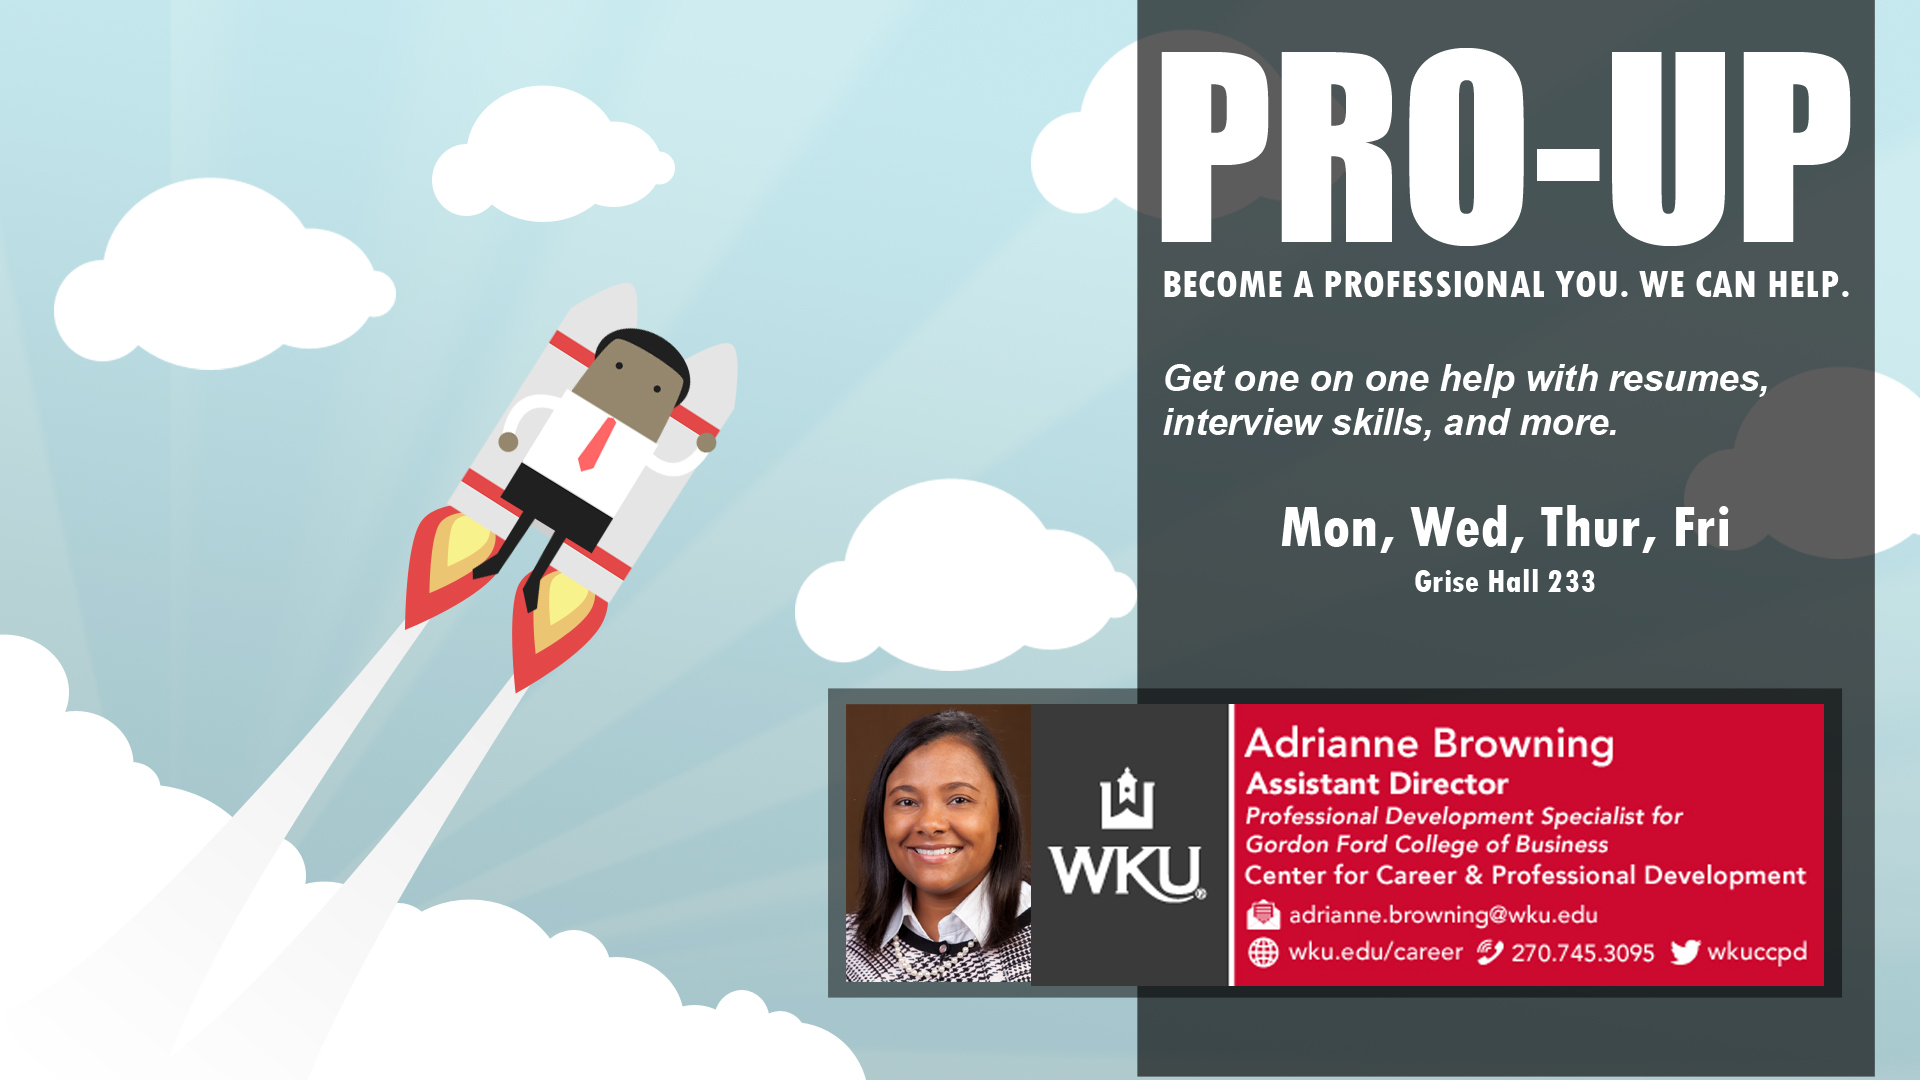 Contact Adrianne Browning for help on professionalism.